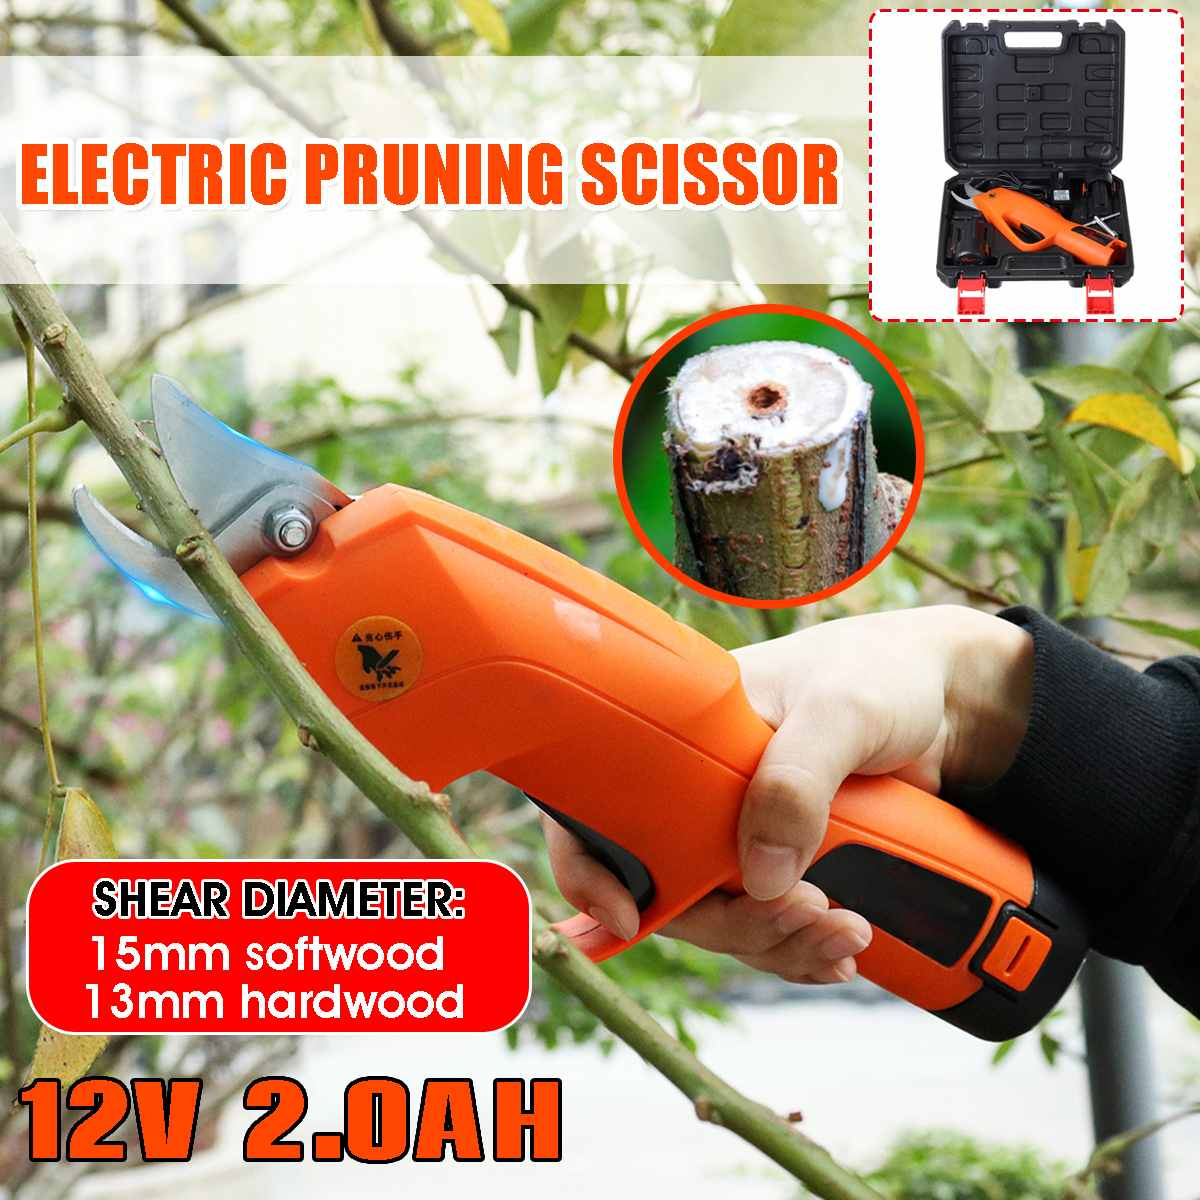 Pruning 12V Ion Branches Pruning Meigar Tree Electric Pruner Lithium Cutter Shear Tree Efficient Cordless Bonsai Fruit